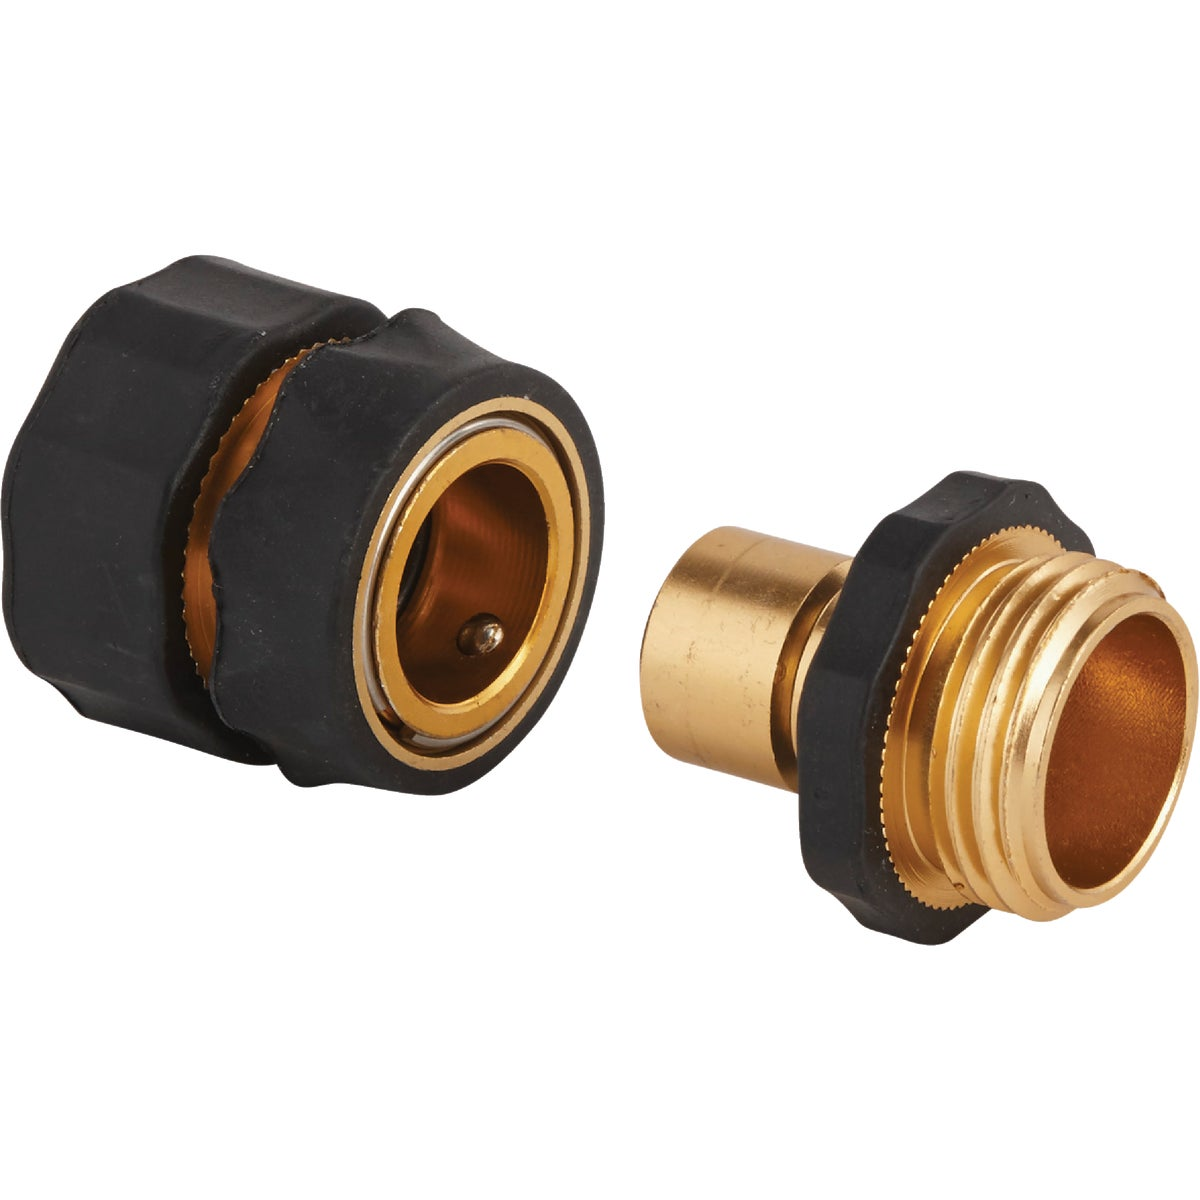 QUICK BRASS COUPLER SET